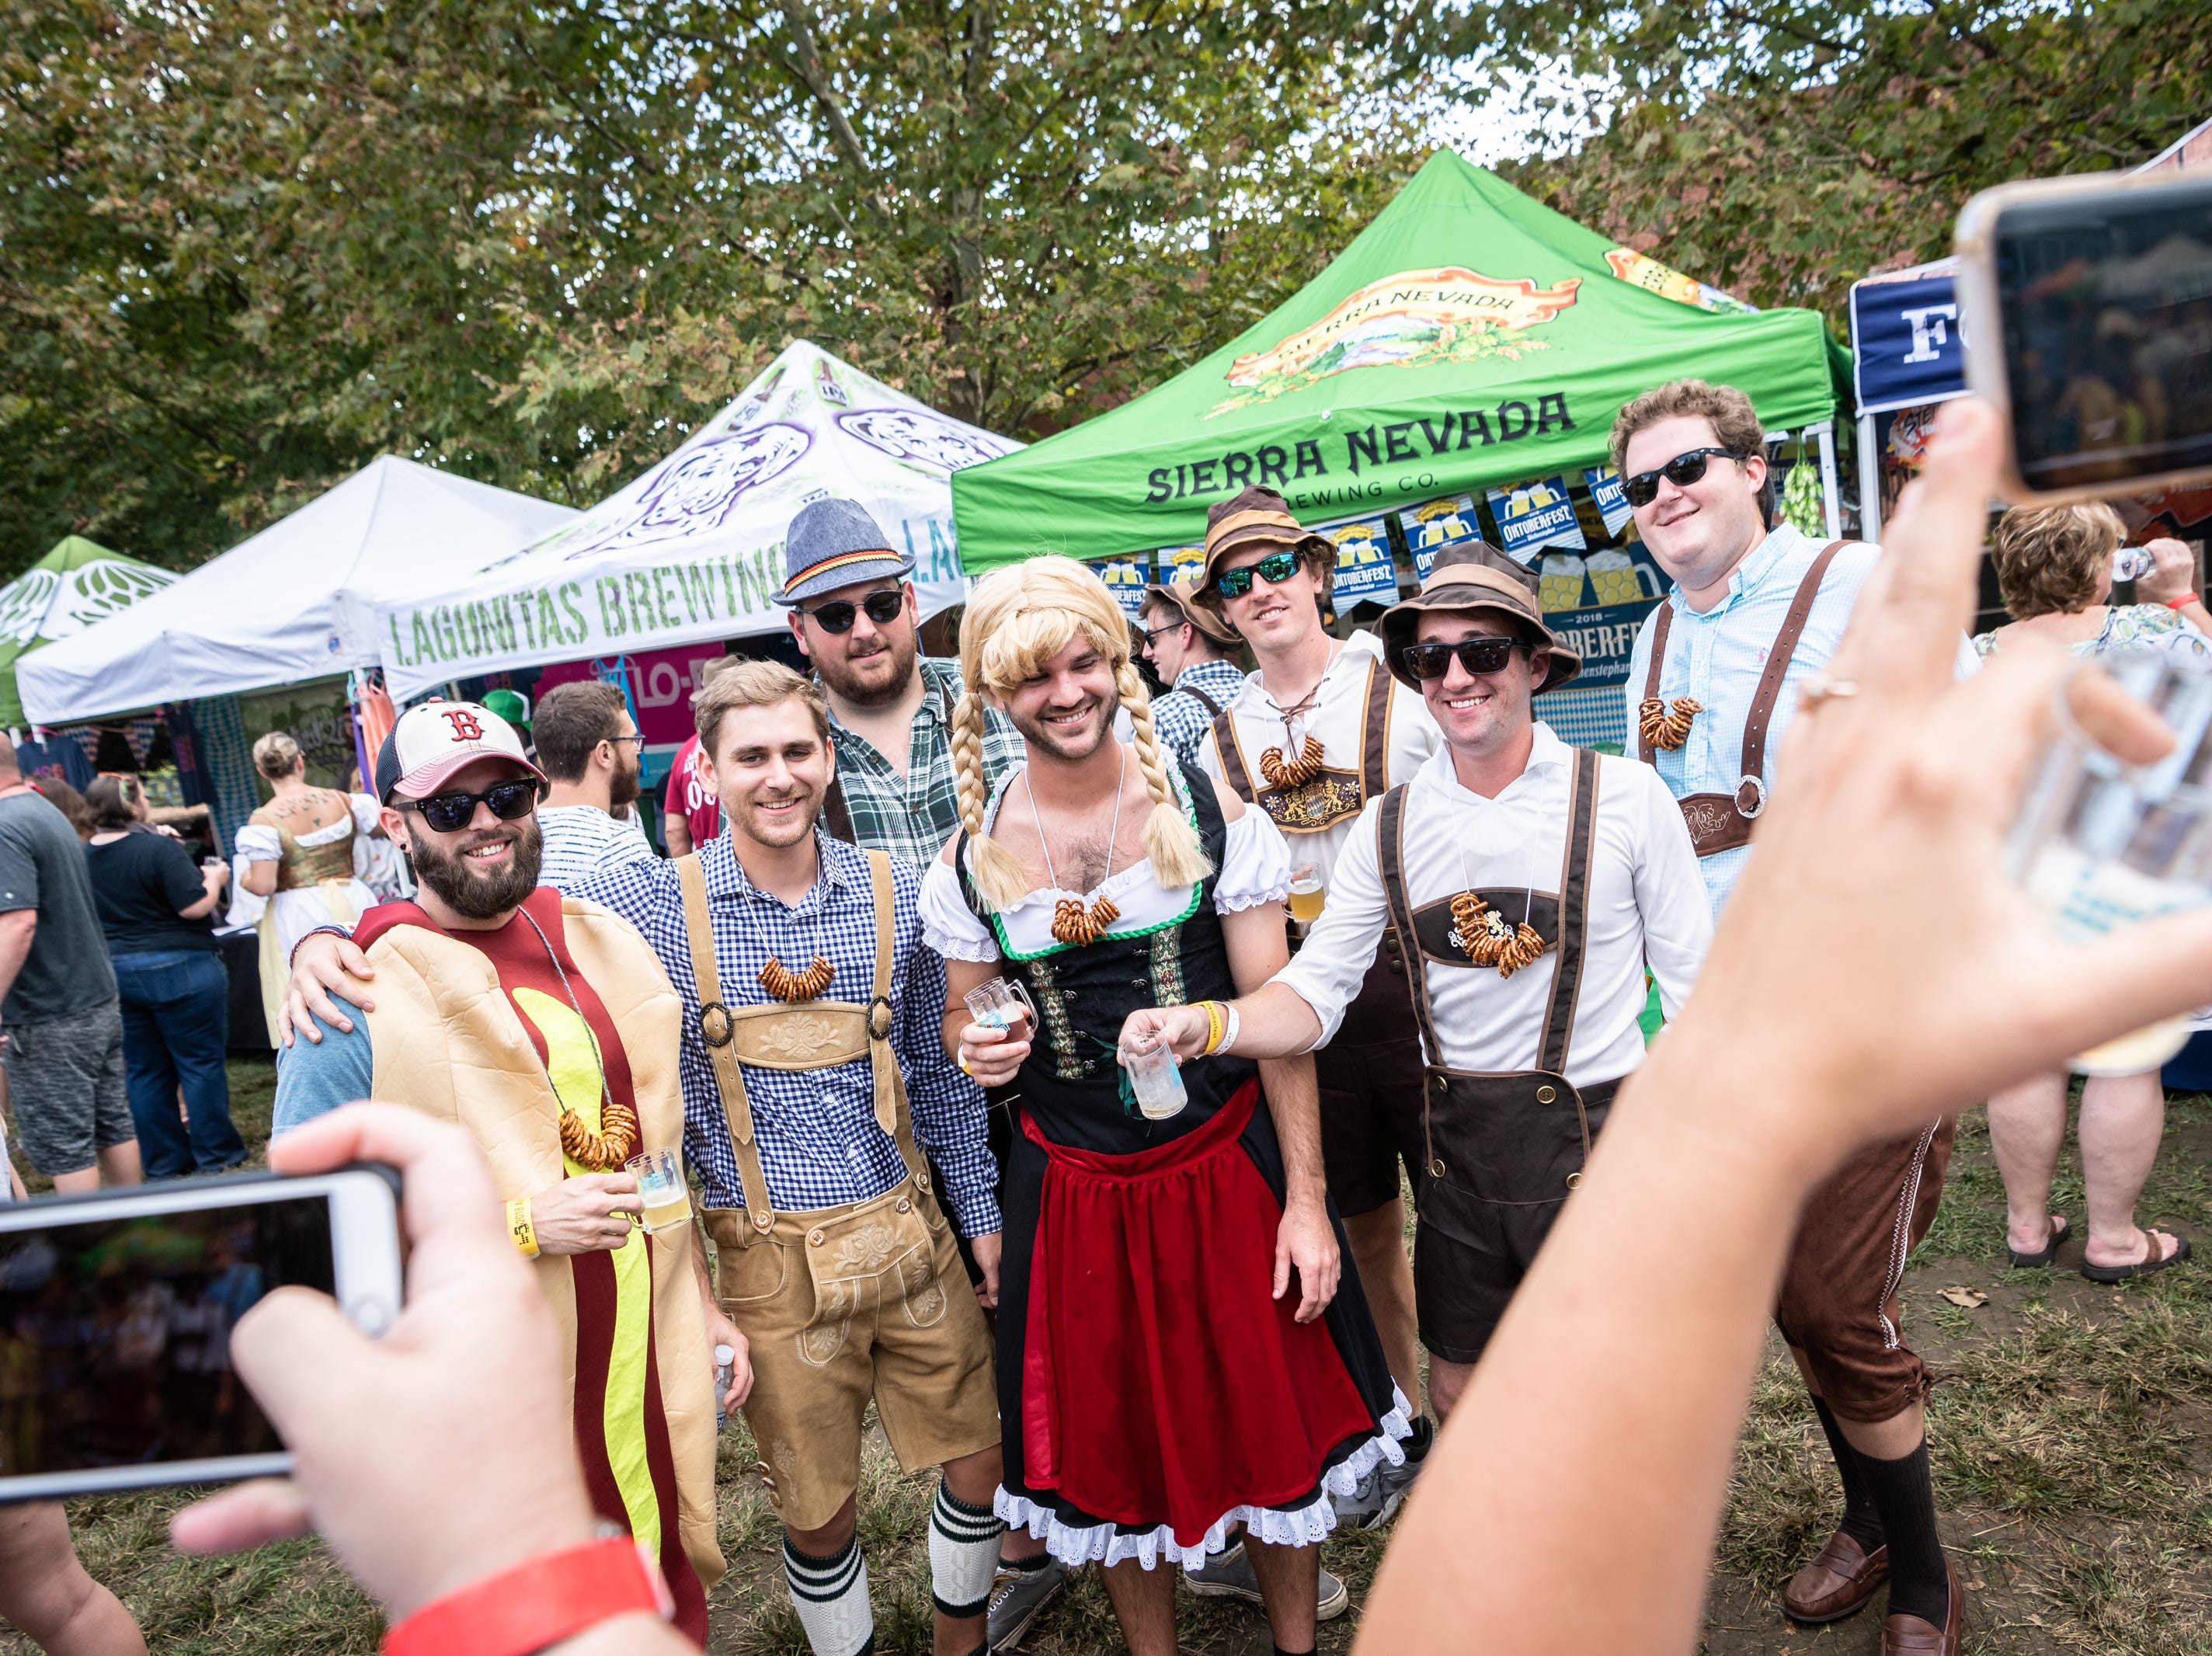 A group of festively-dressed attendees of the 10th annual Asheville Oktoberfest pose for a photo took place at Pack Square Park Saturday, Oct. 6, 2018.